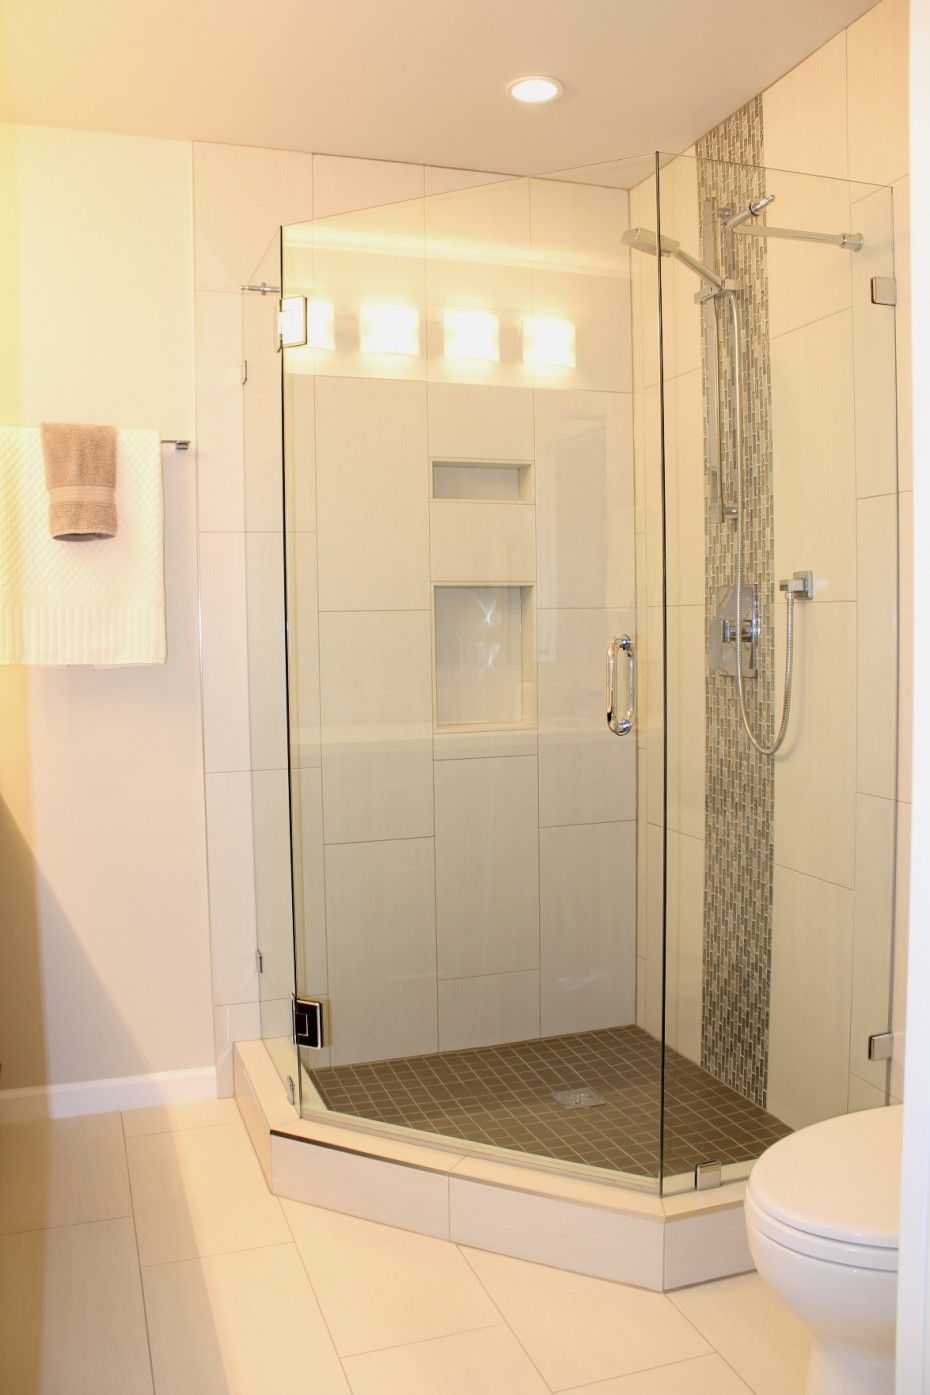 Bathroom Inspiration. Superb Stand Up Shower With Enclosure And ...